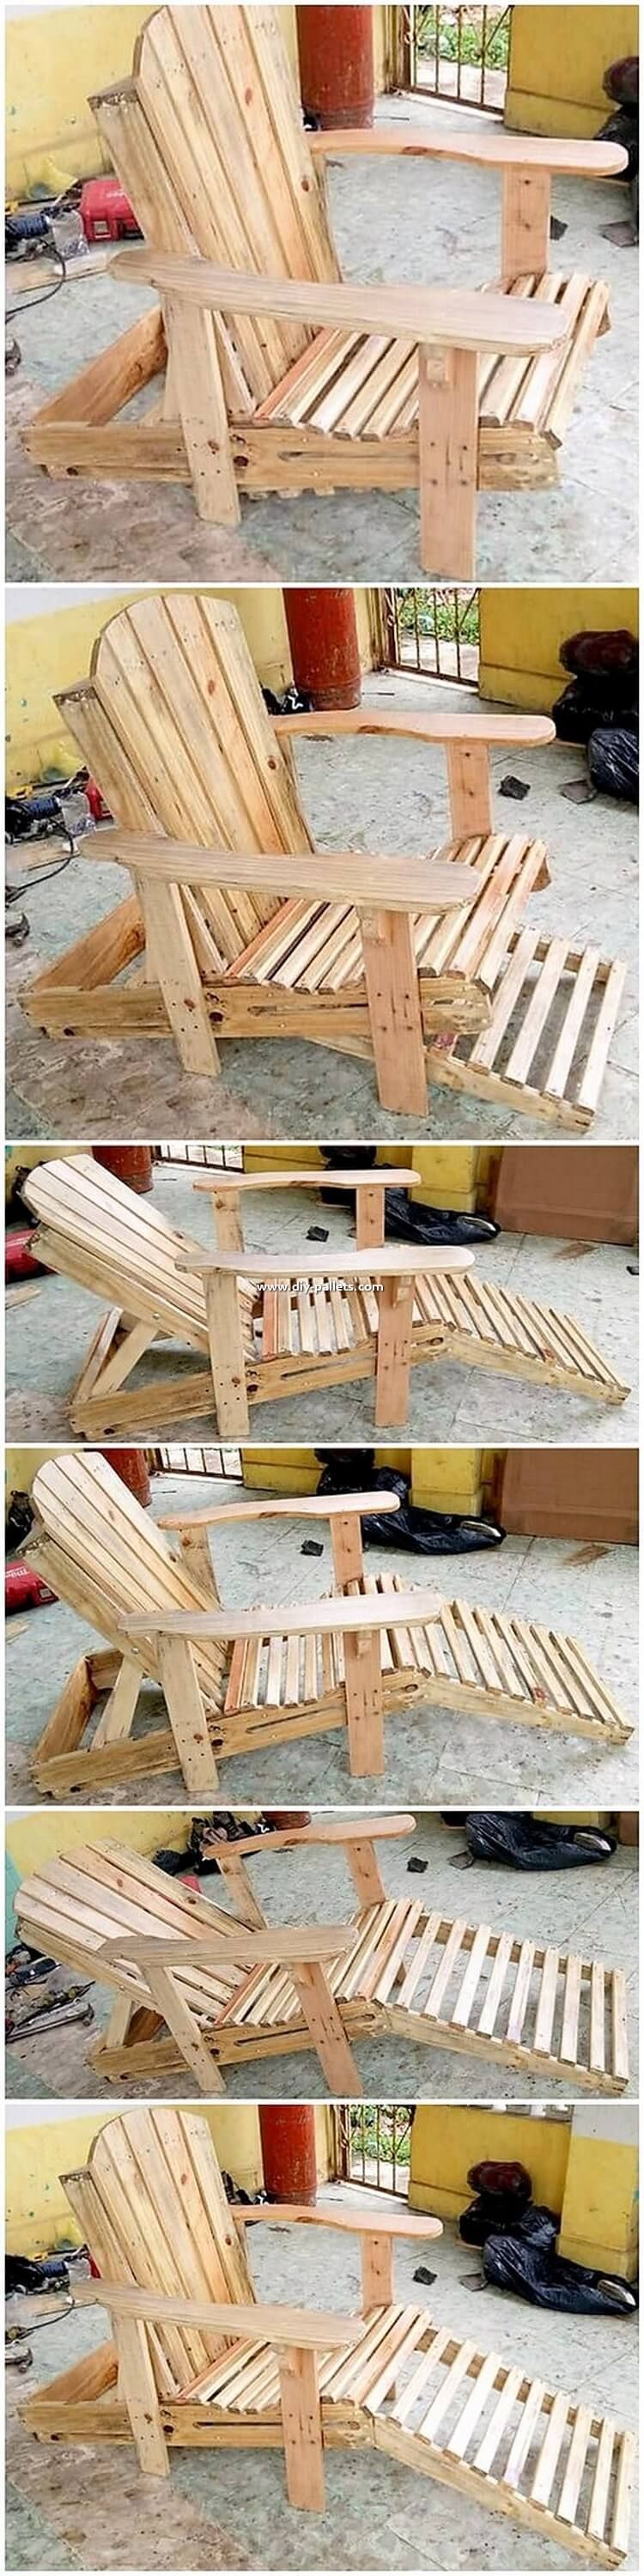 extraordinary diy wood pallet ideas for your home pallet on extraordinary ideas for old used dumped pallets wood id=79844